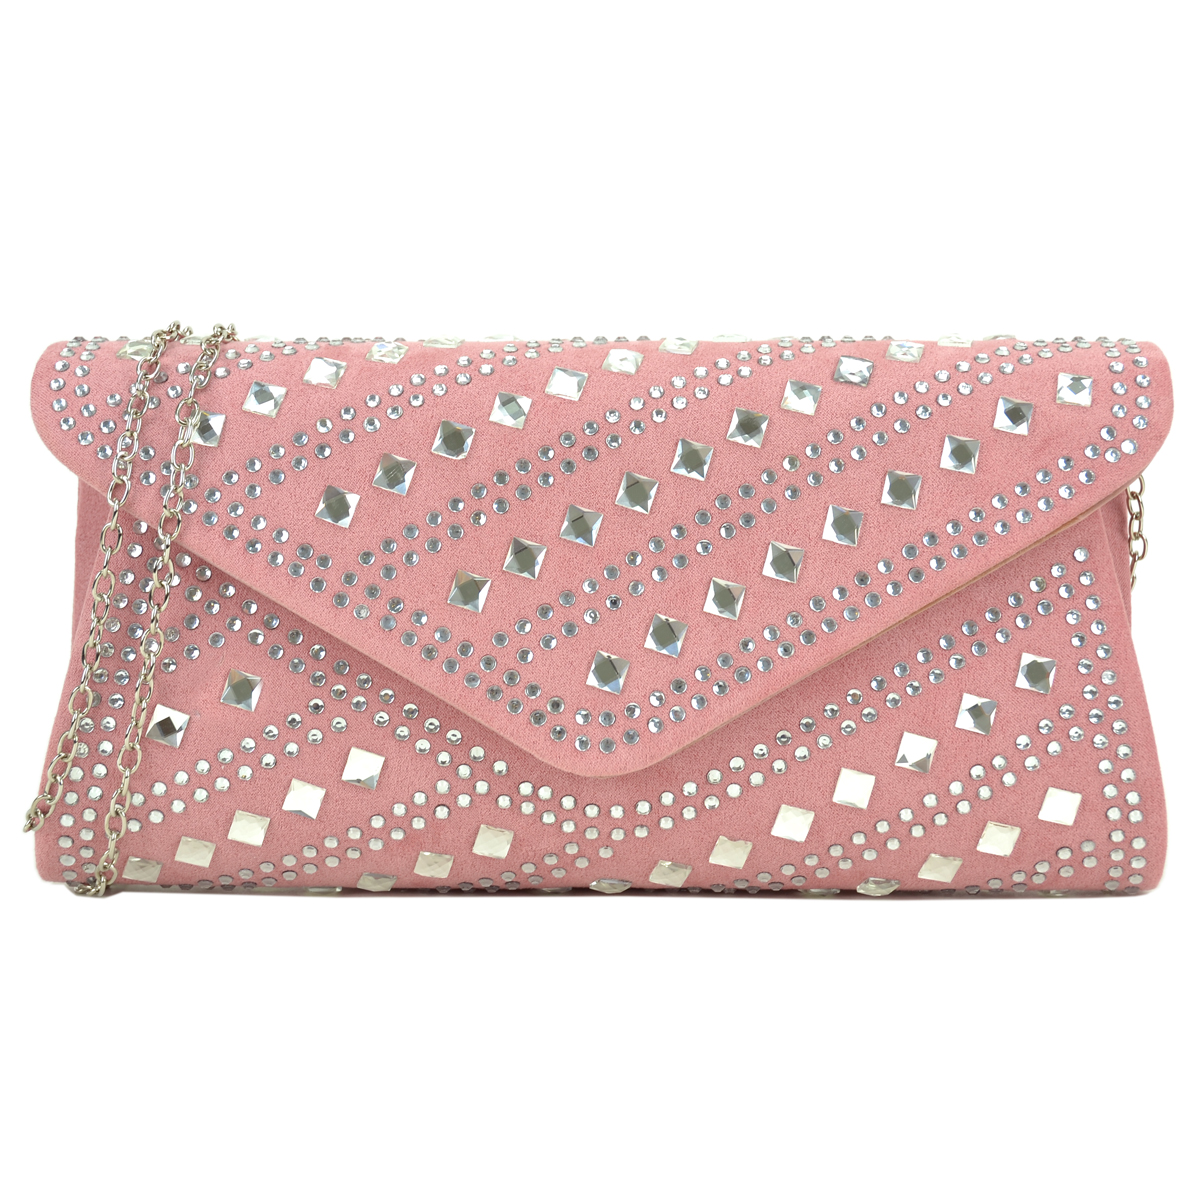 Rectangular Studded Rhinestone evening purse